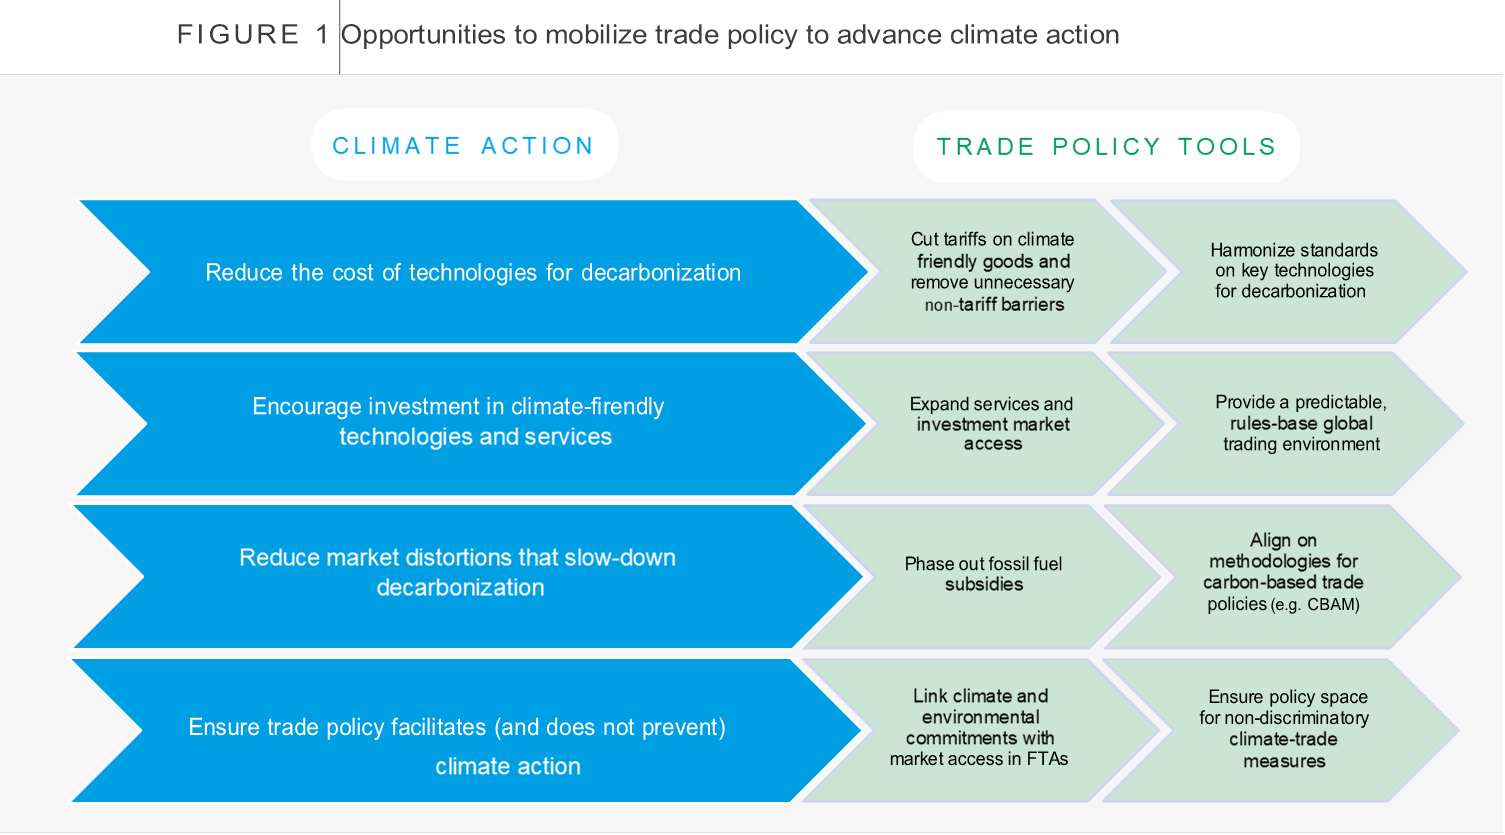 Opportunities to mobilize trade policy to advance climate action